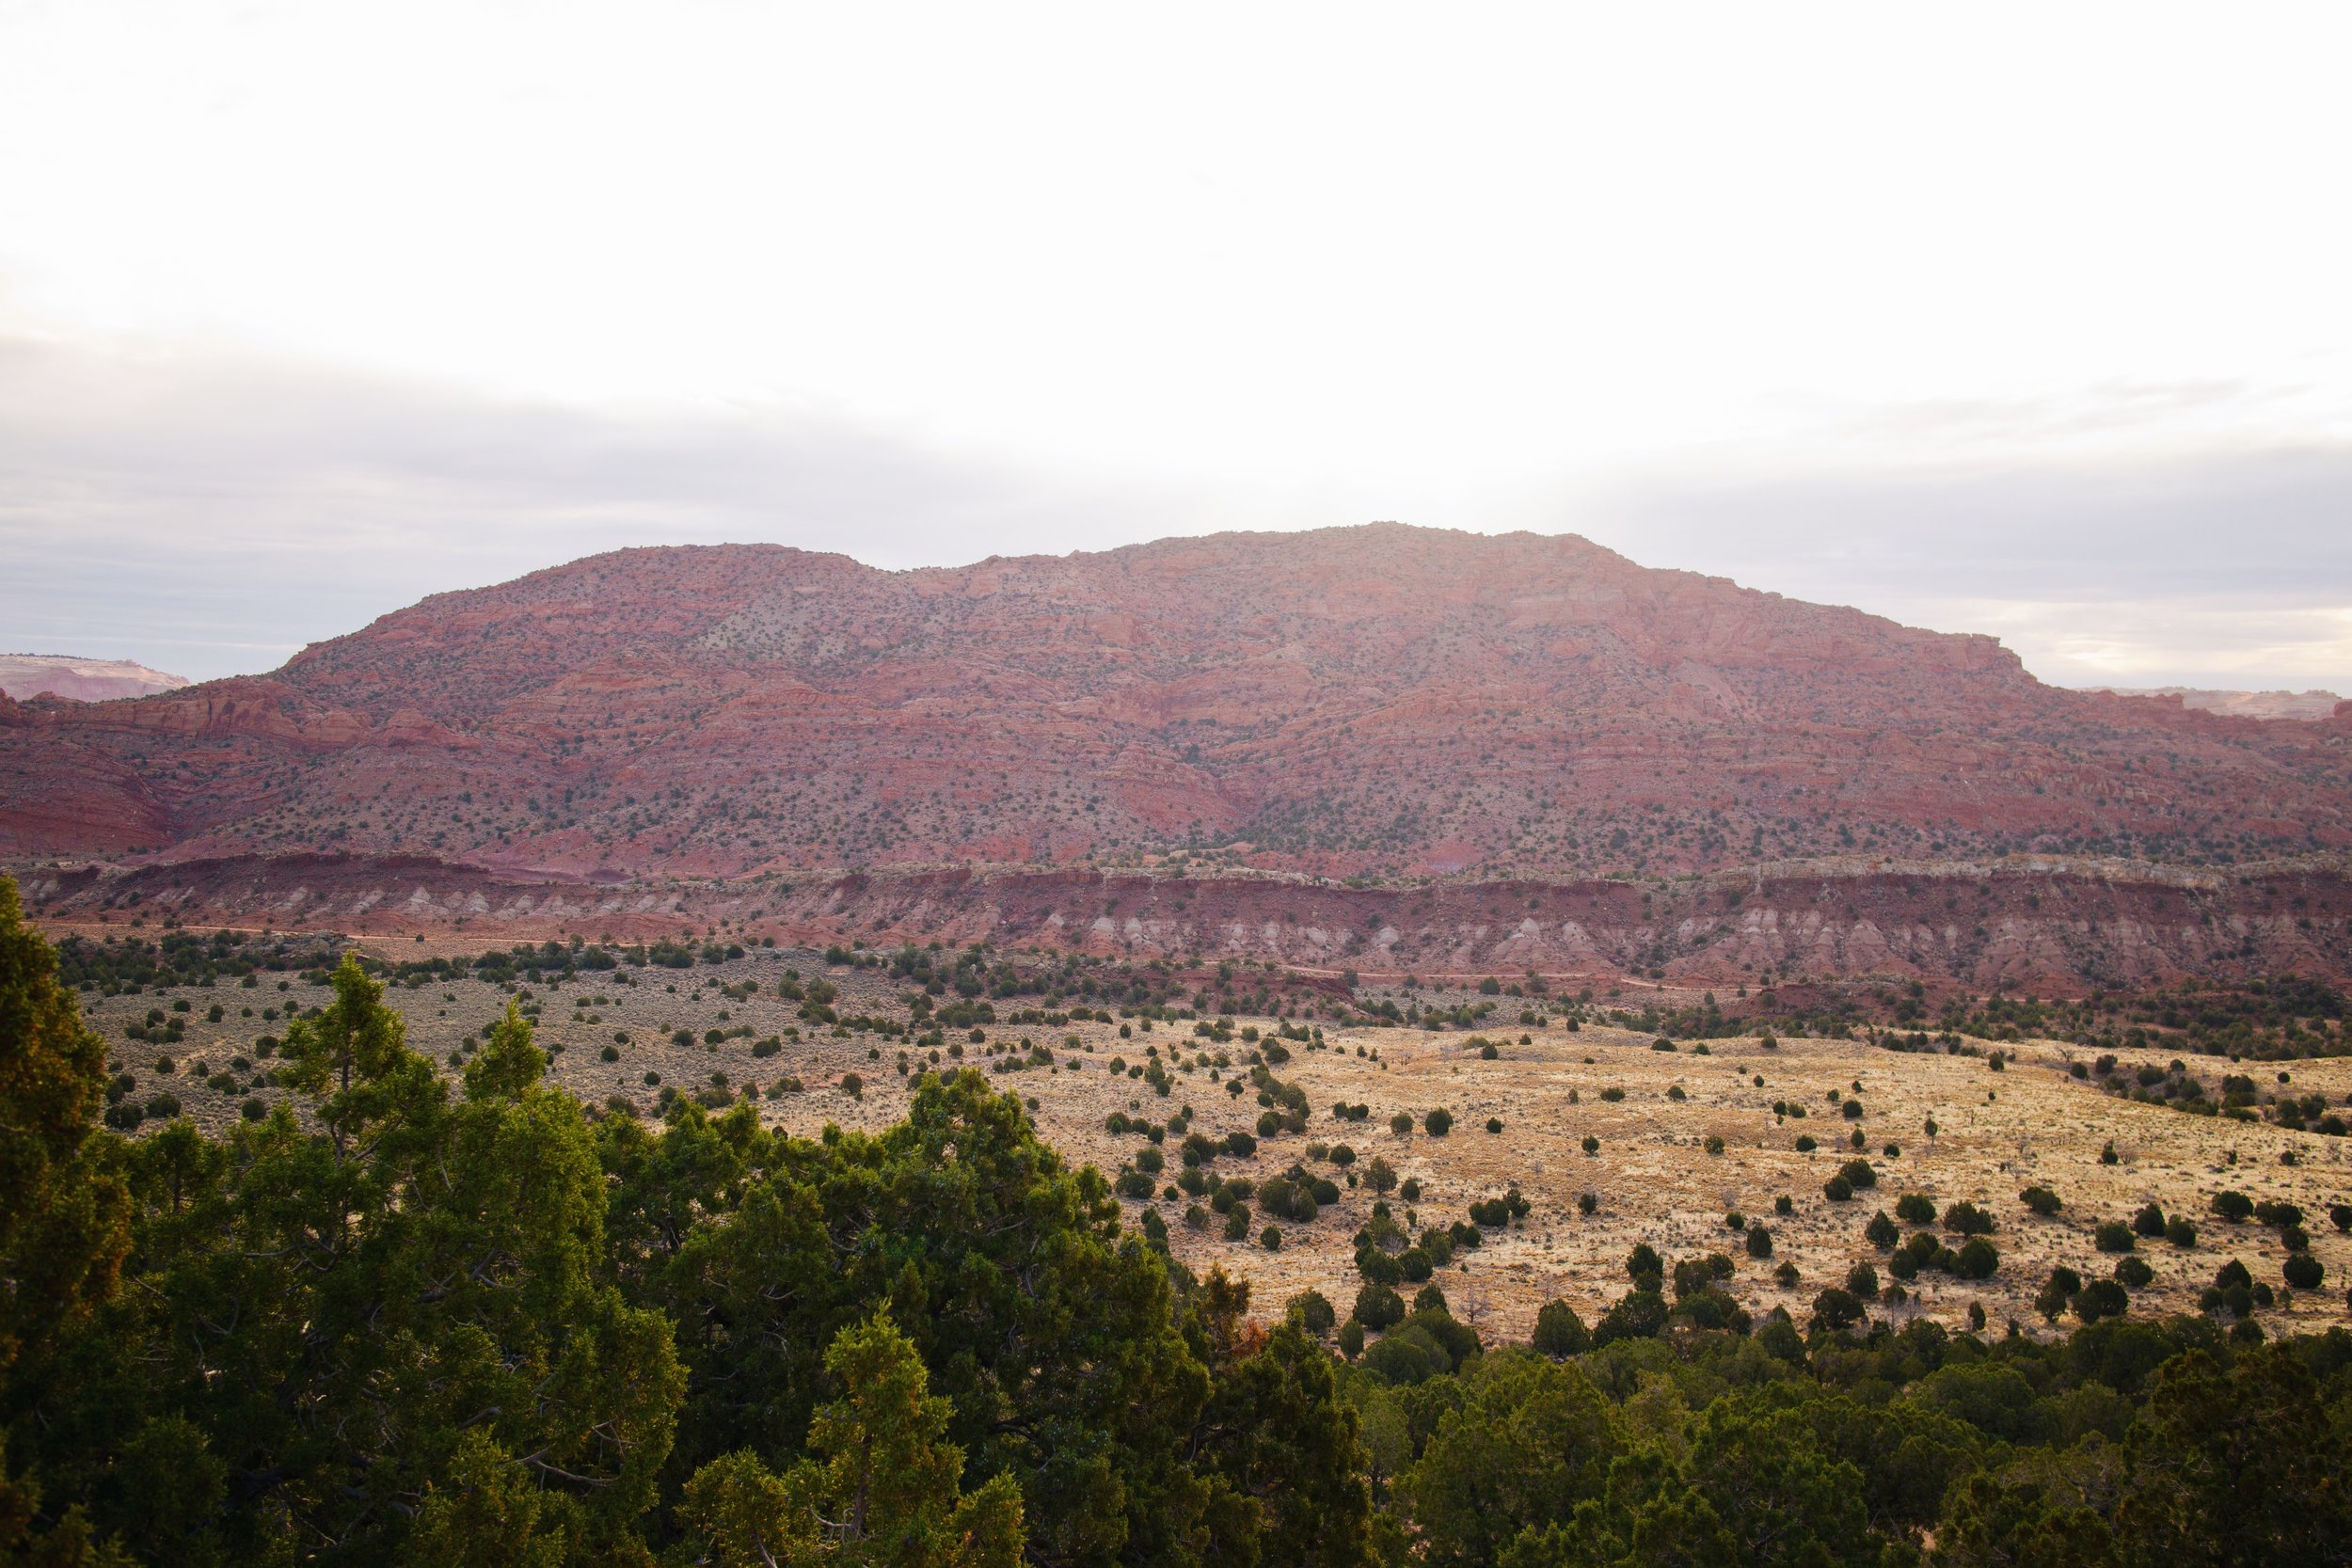 Looking back at the Vermillion Cliffs